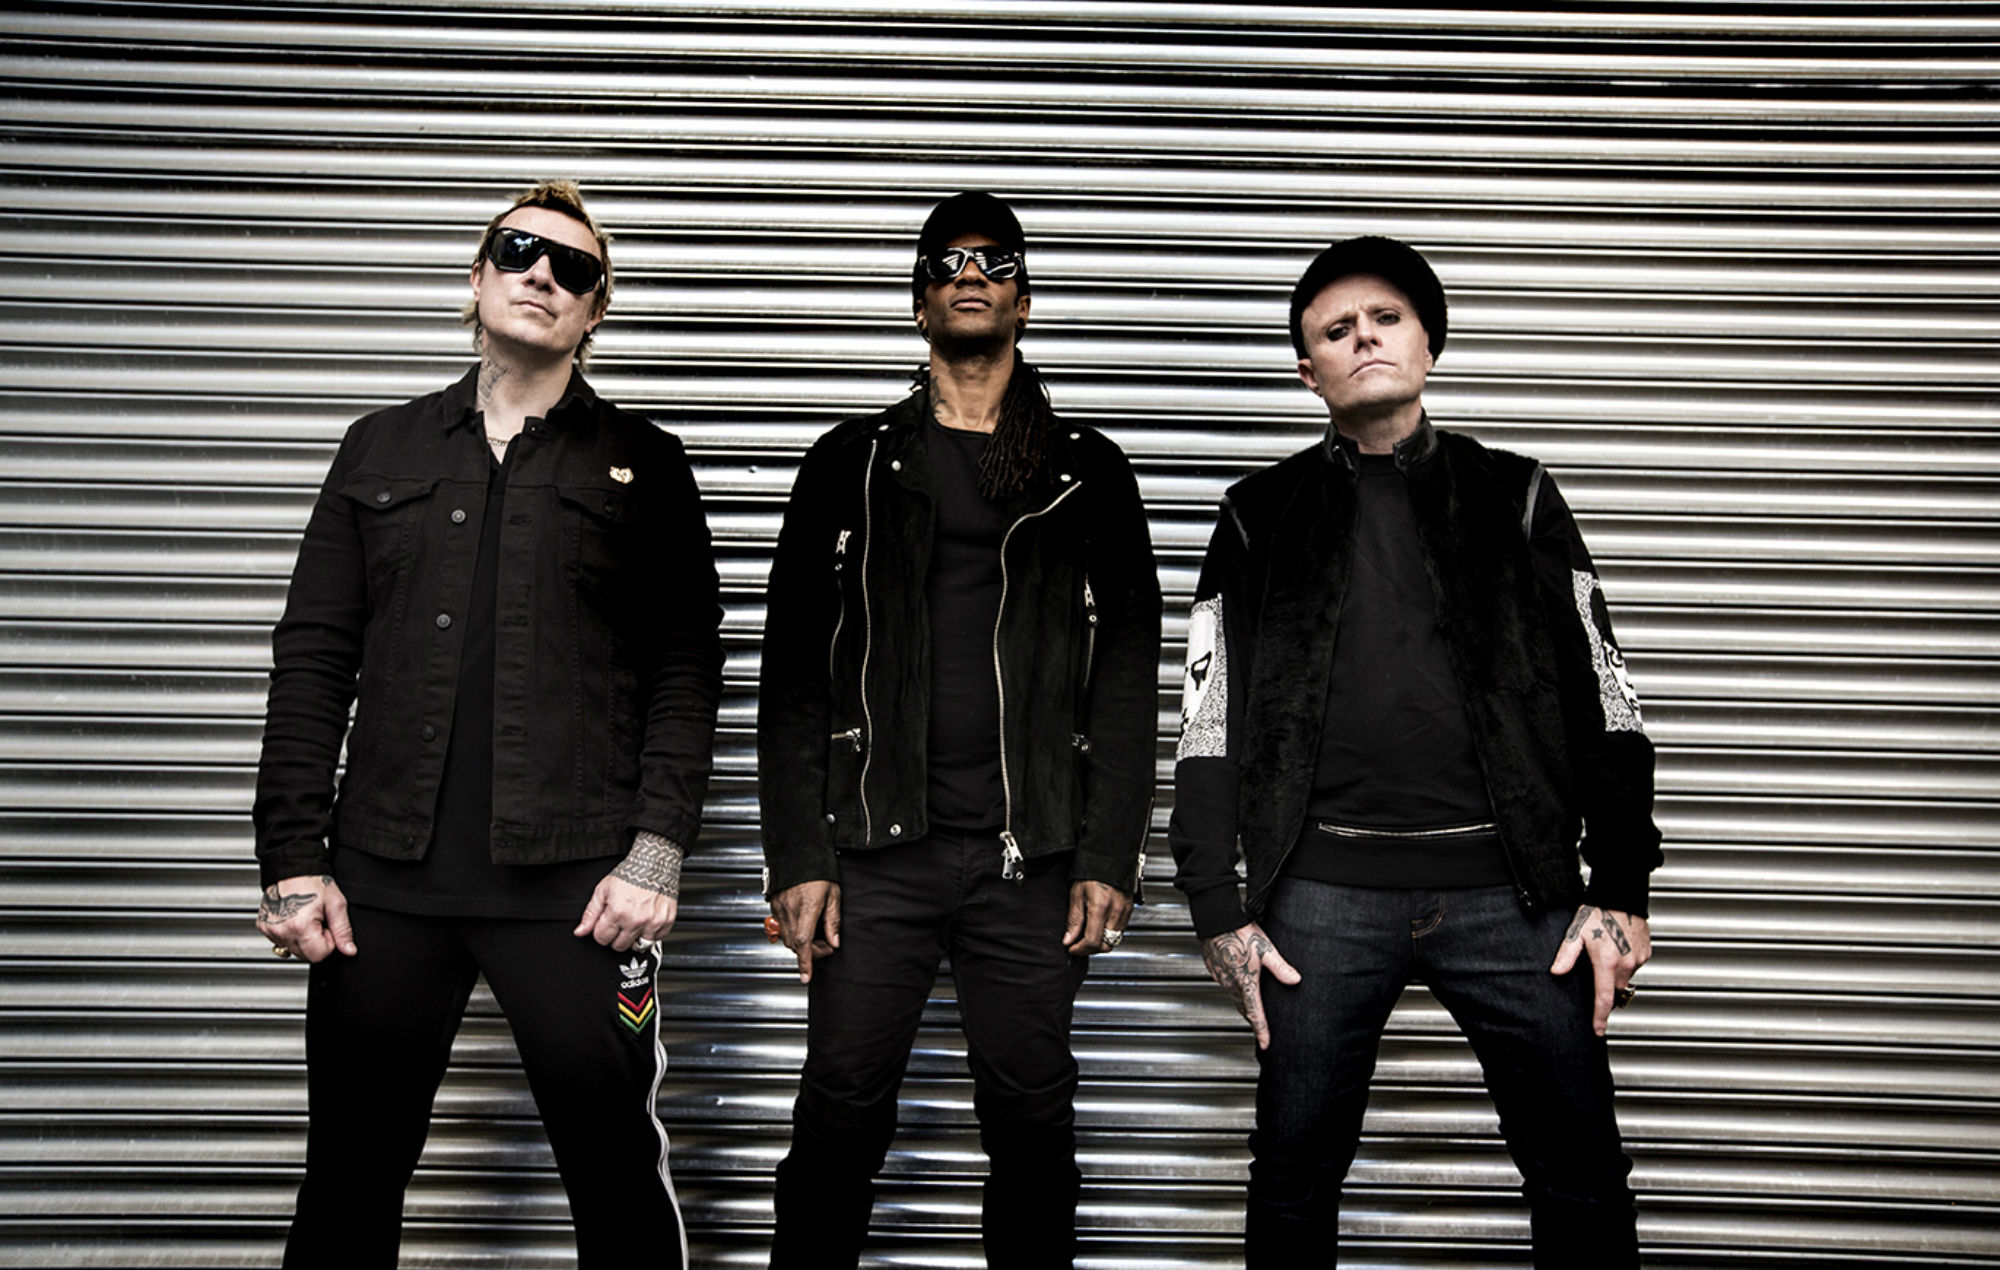 The Prodigy share first snippet of new music since Keith Flint's death